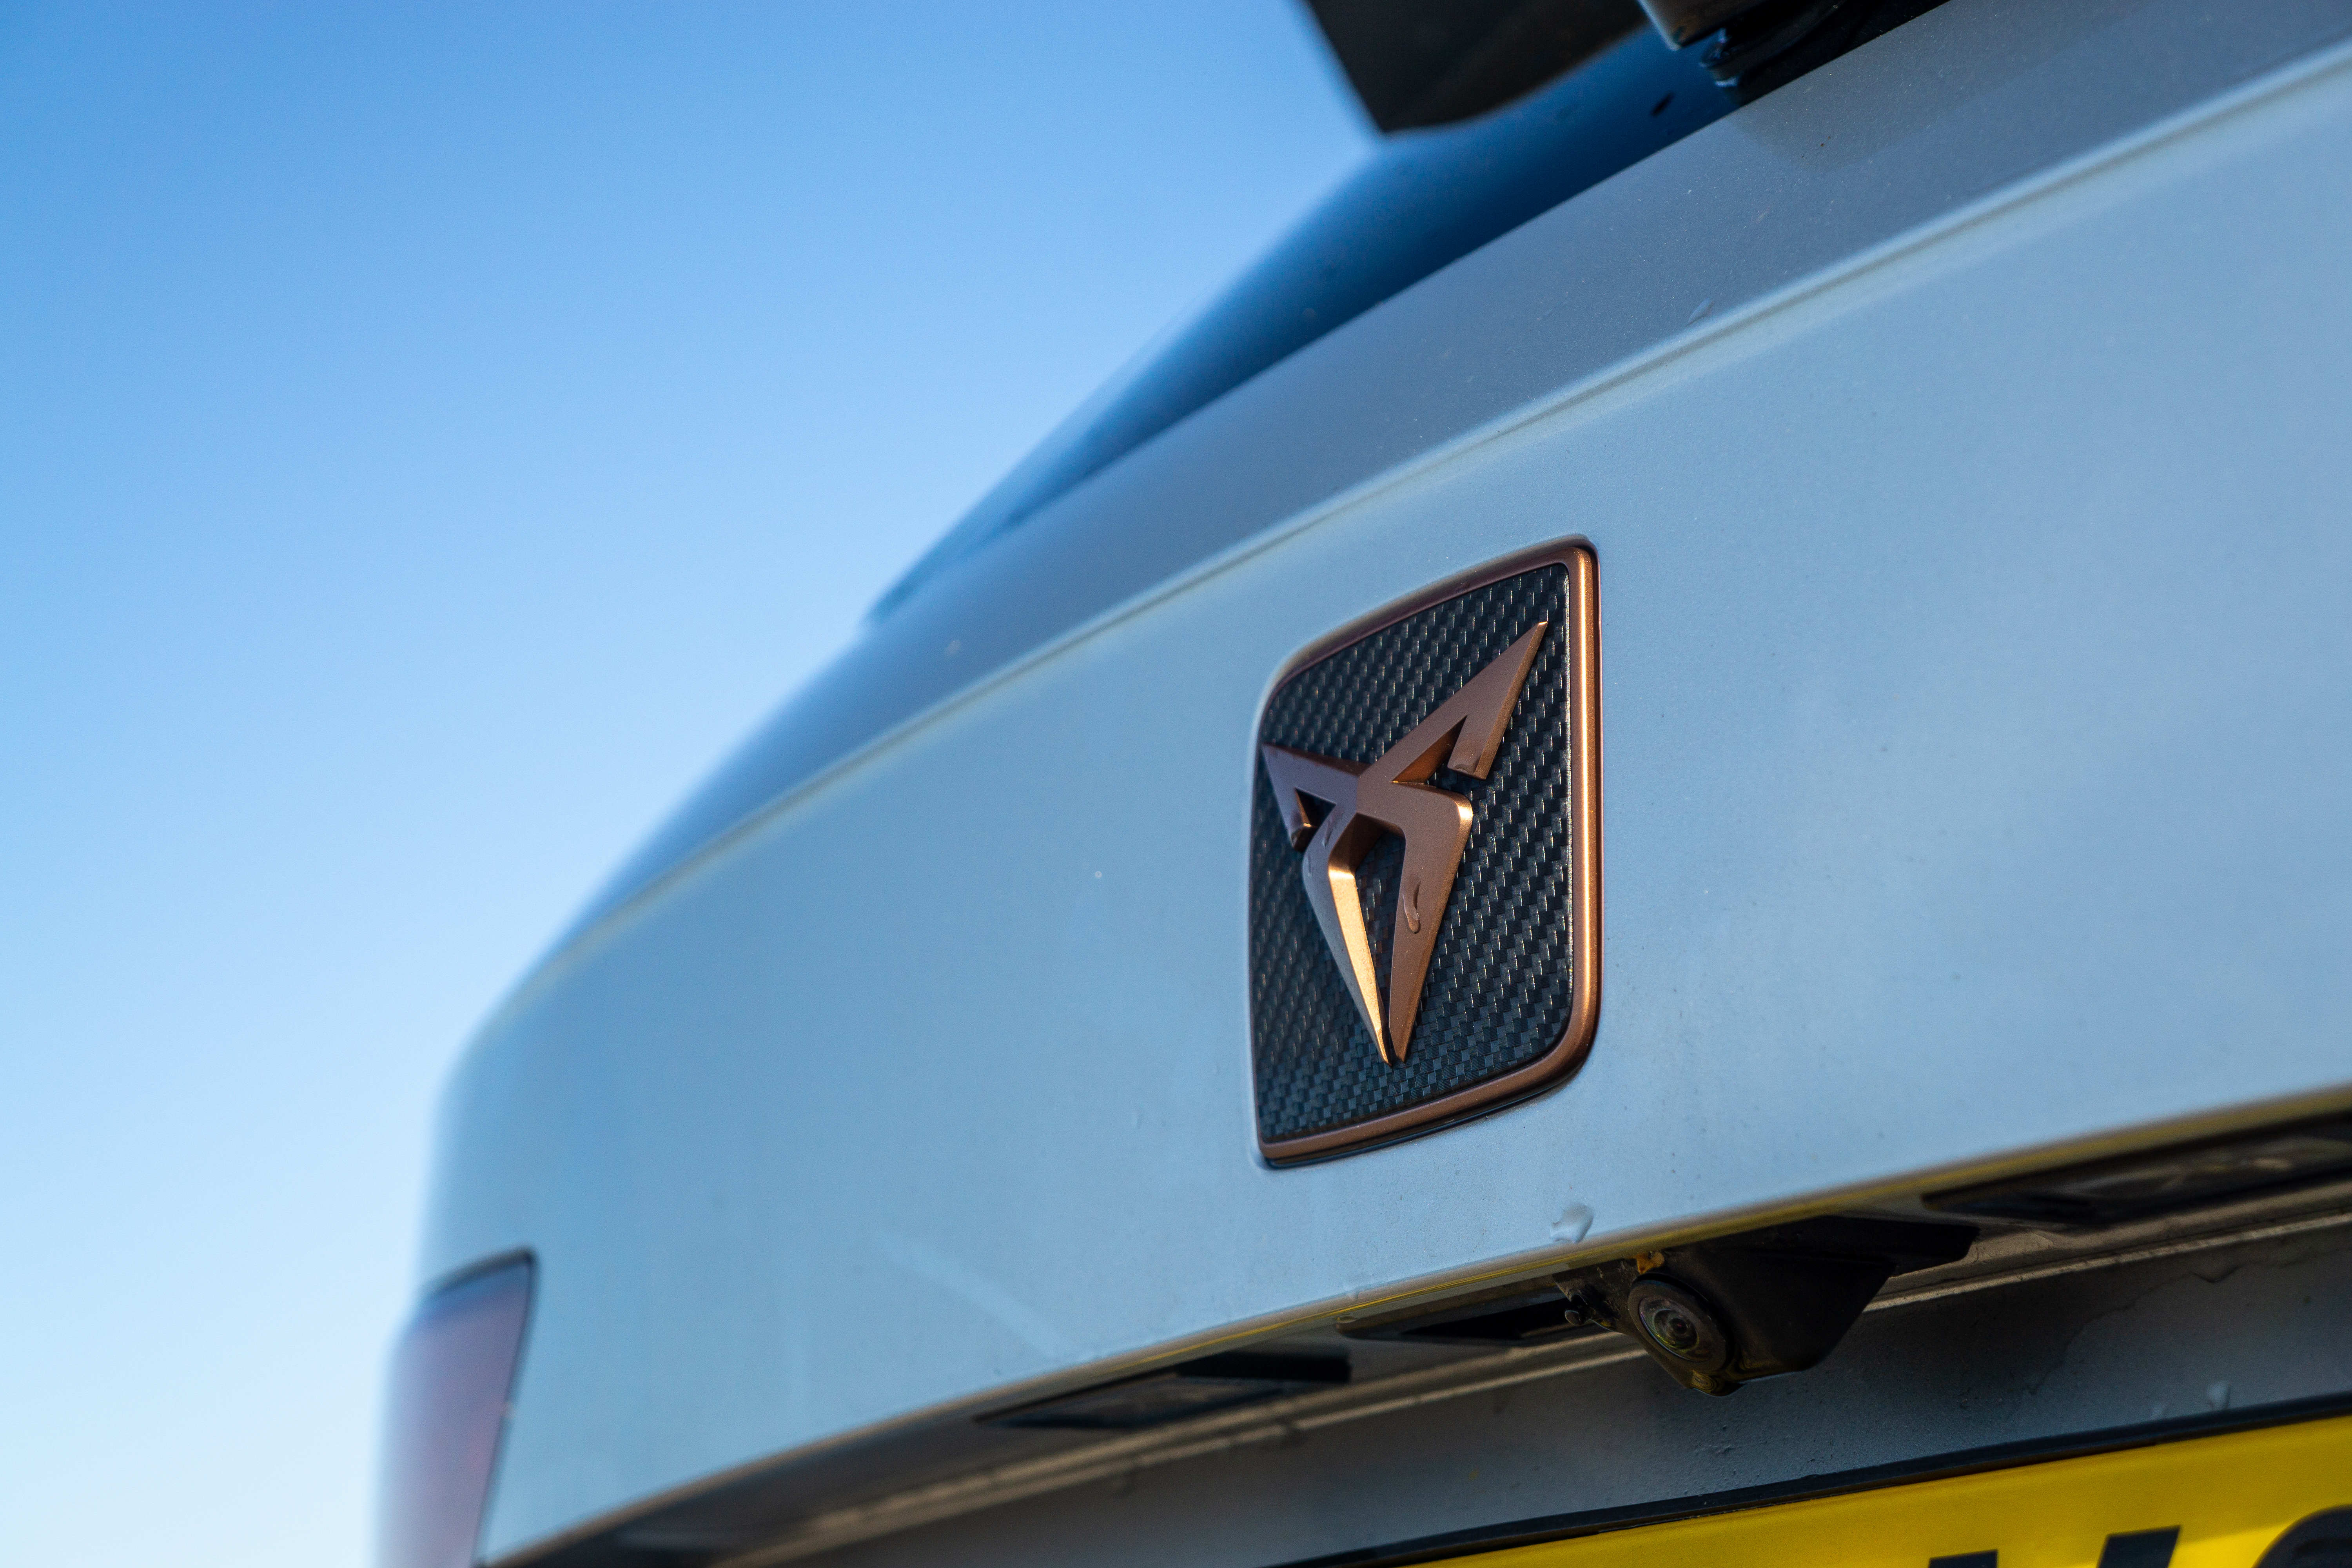 The rear of the car gets Cupra's new logo too